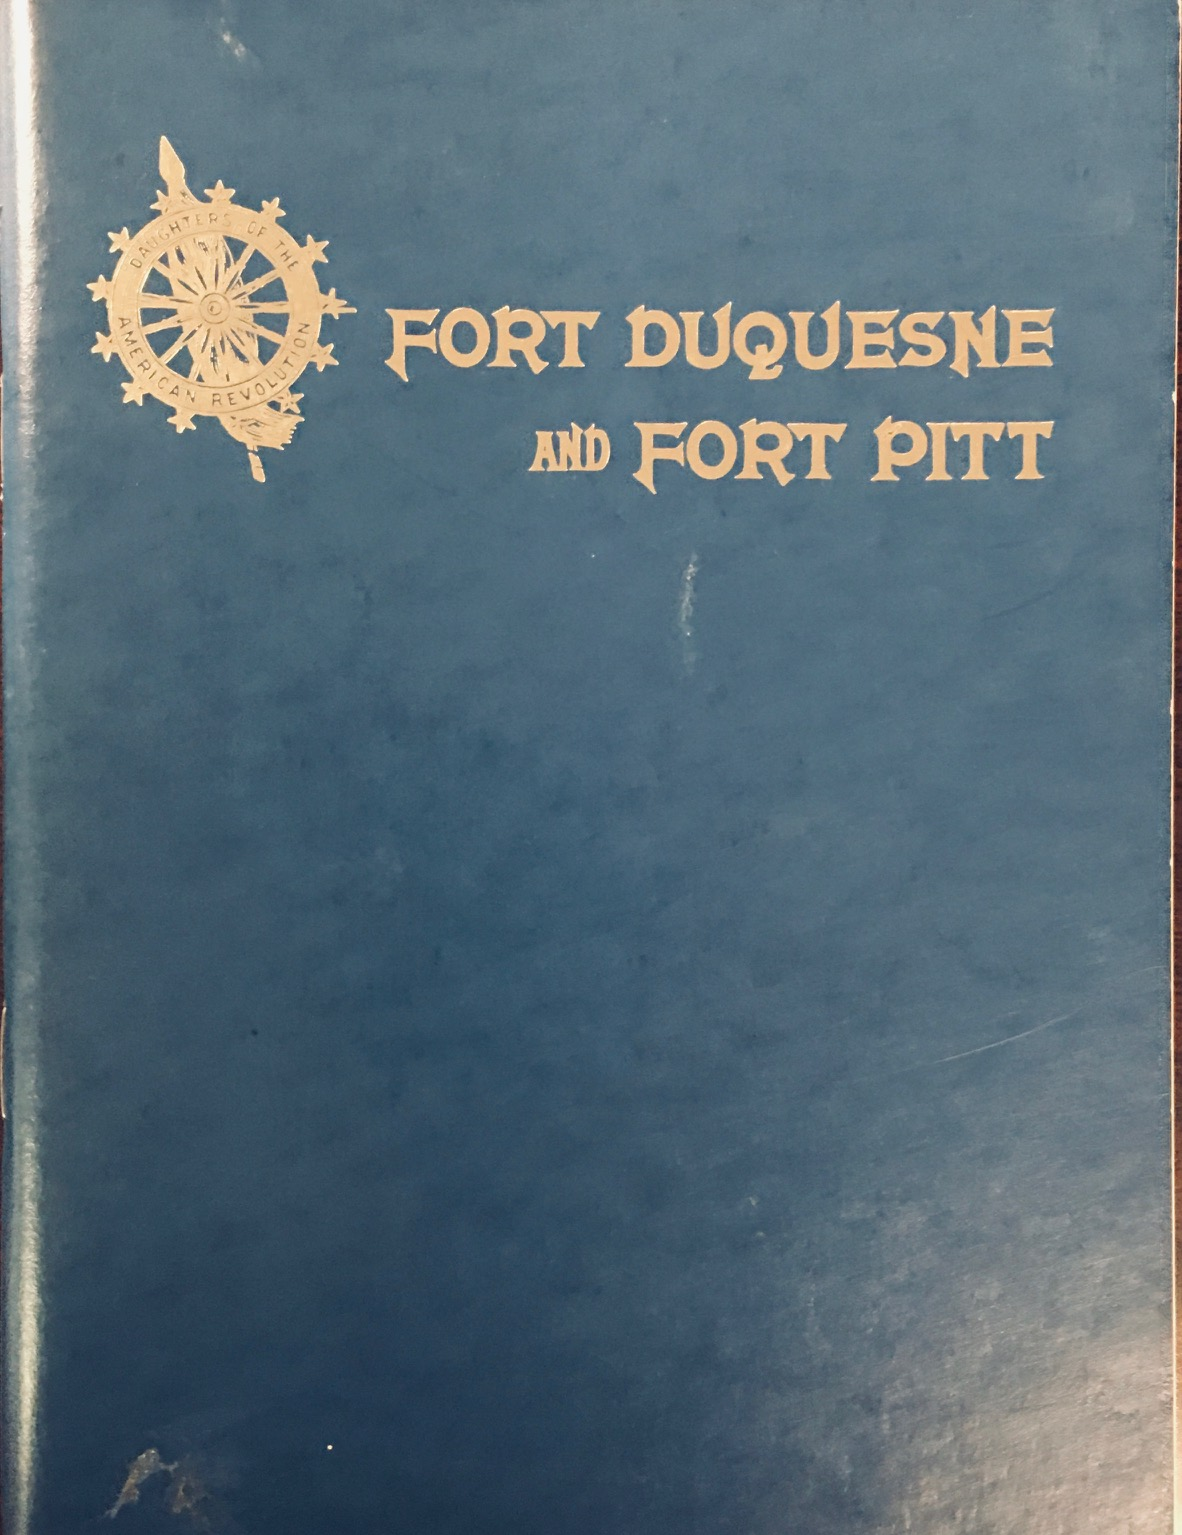 Image for Fort Duquesne and Fort Pitt: Early Names of Pittsburgh Streets - 15th Edition (1975)